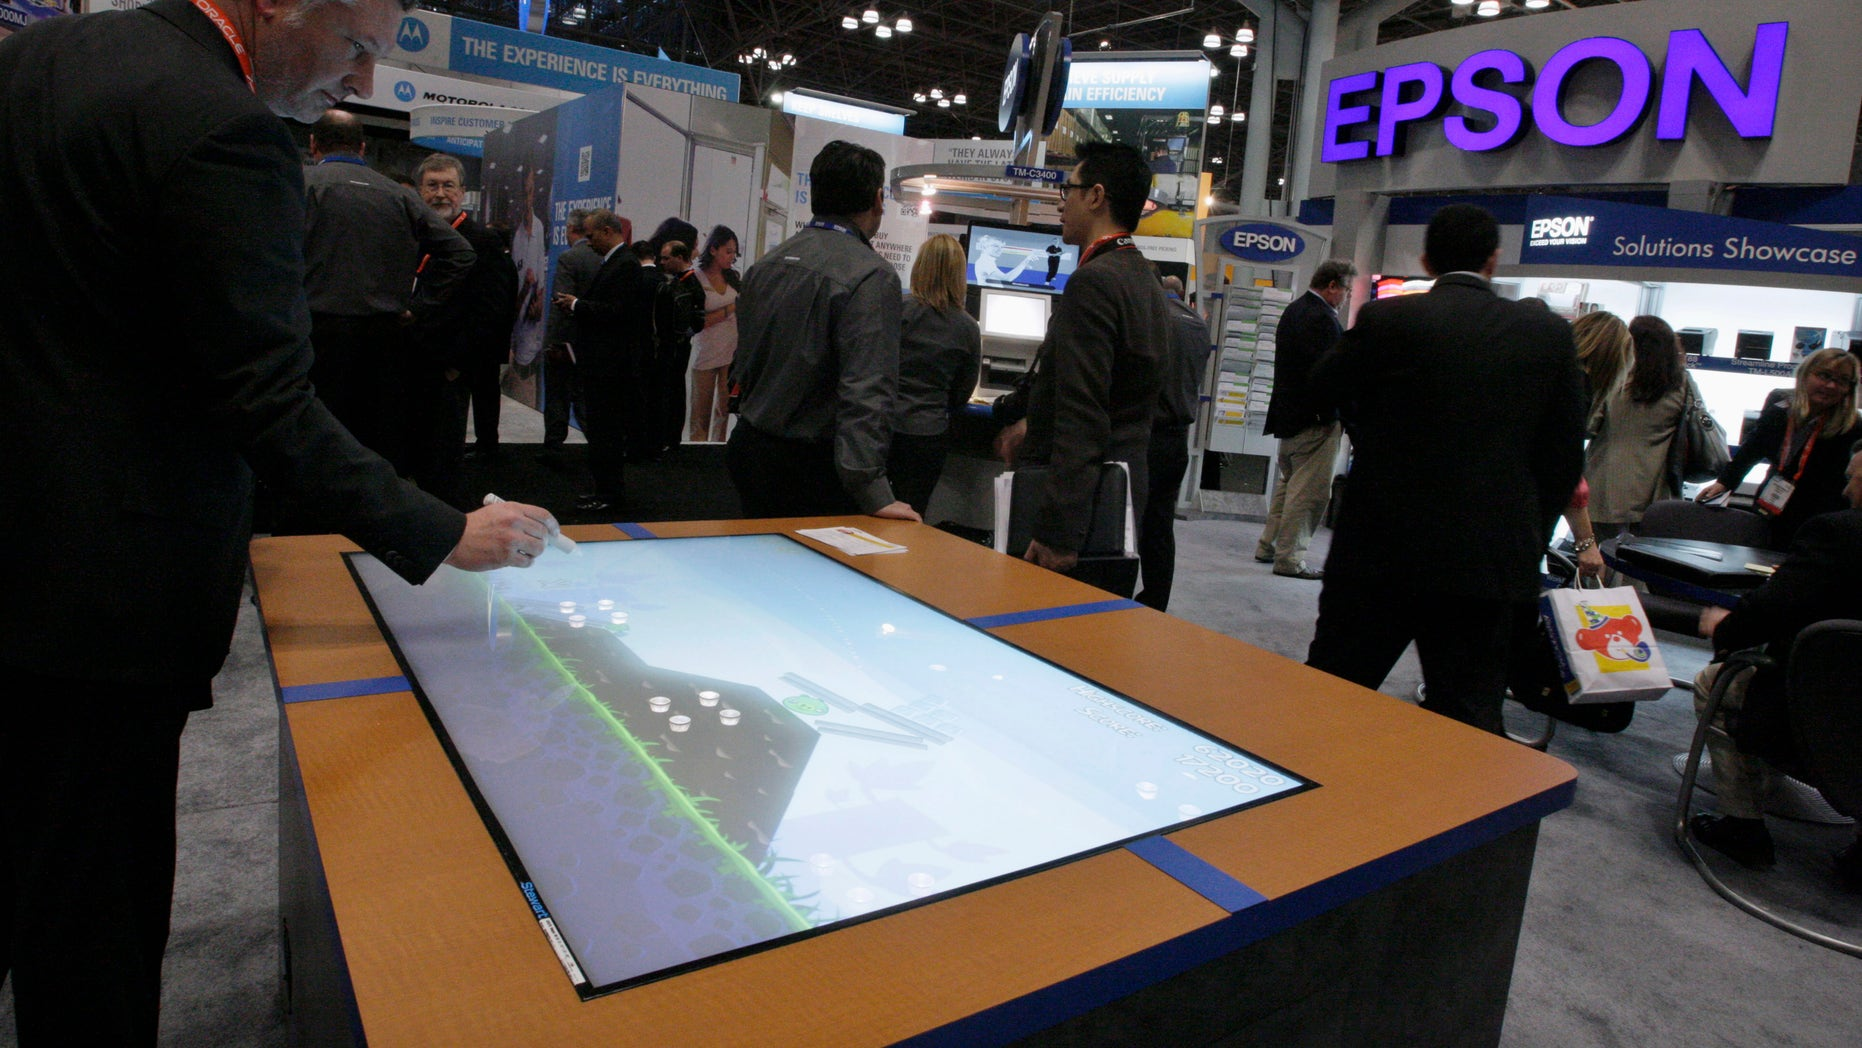 File photo. A man visits the Epson stand at the National Retail Federation's Annual Convention and Expo in New York January 2012.